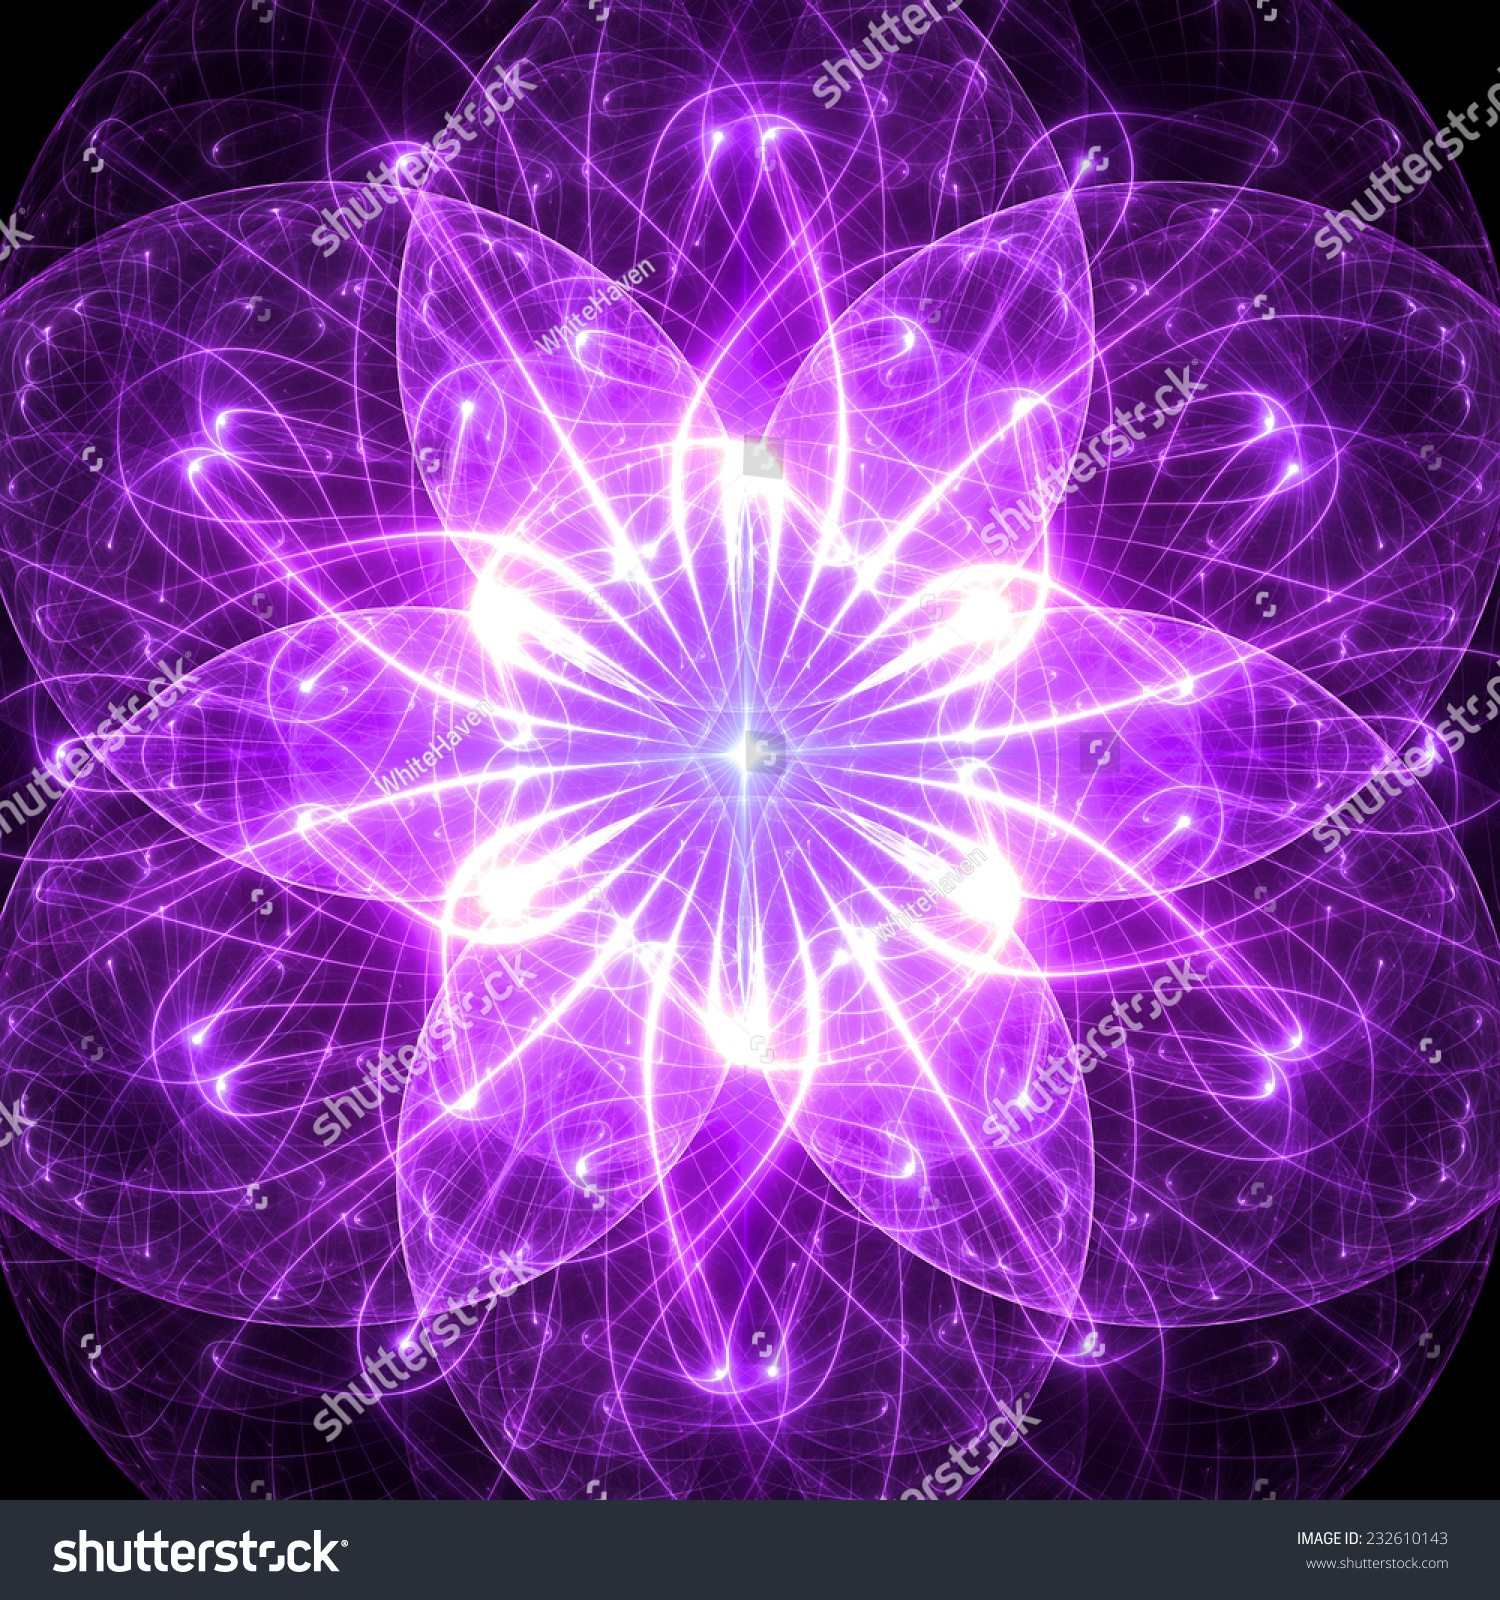 Abstract Purple Star Like Flower Background In High Resolution With